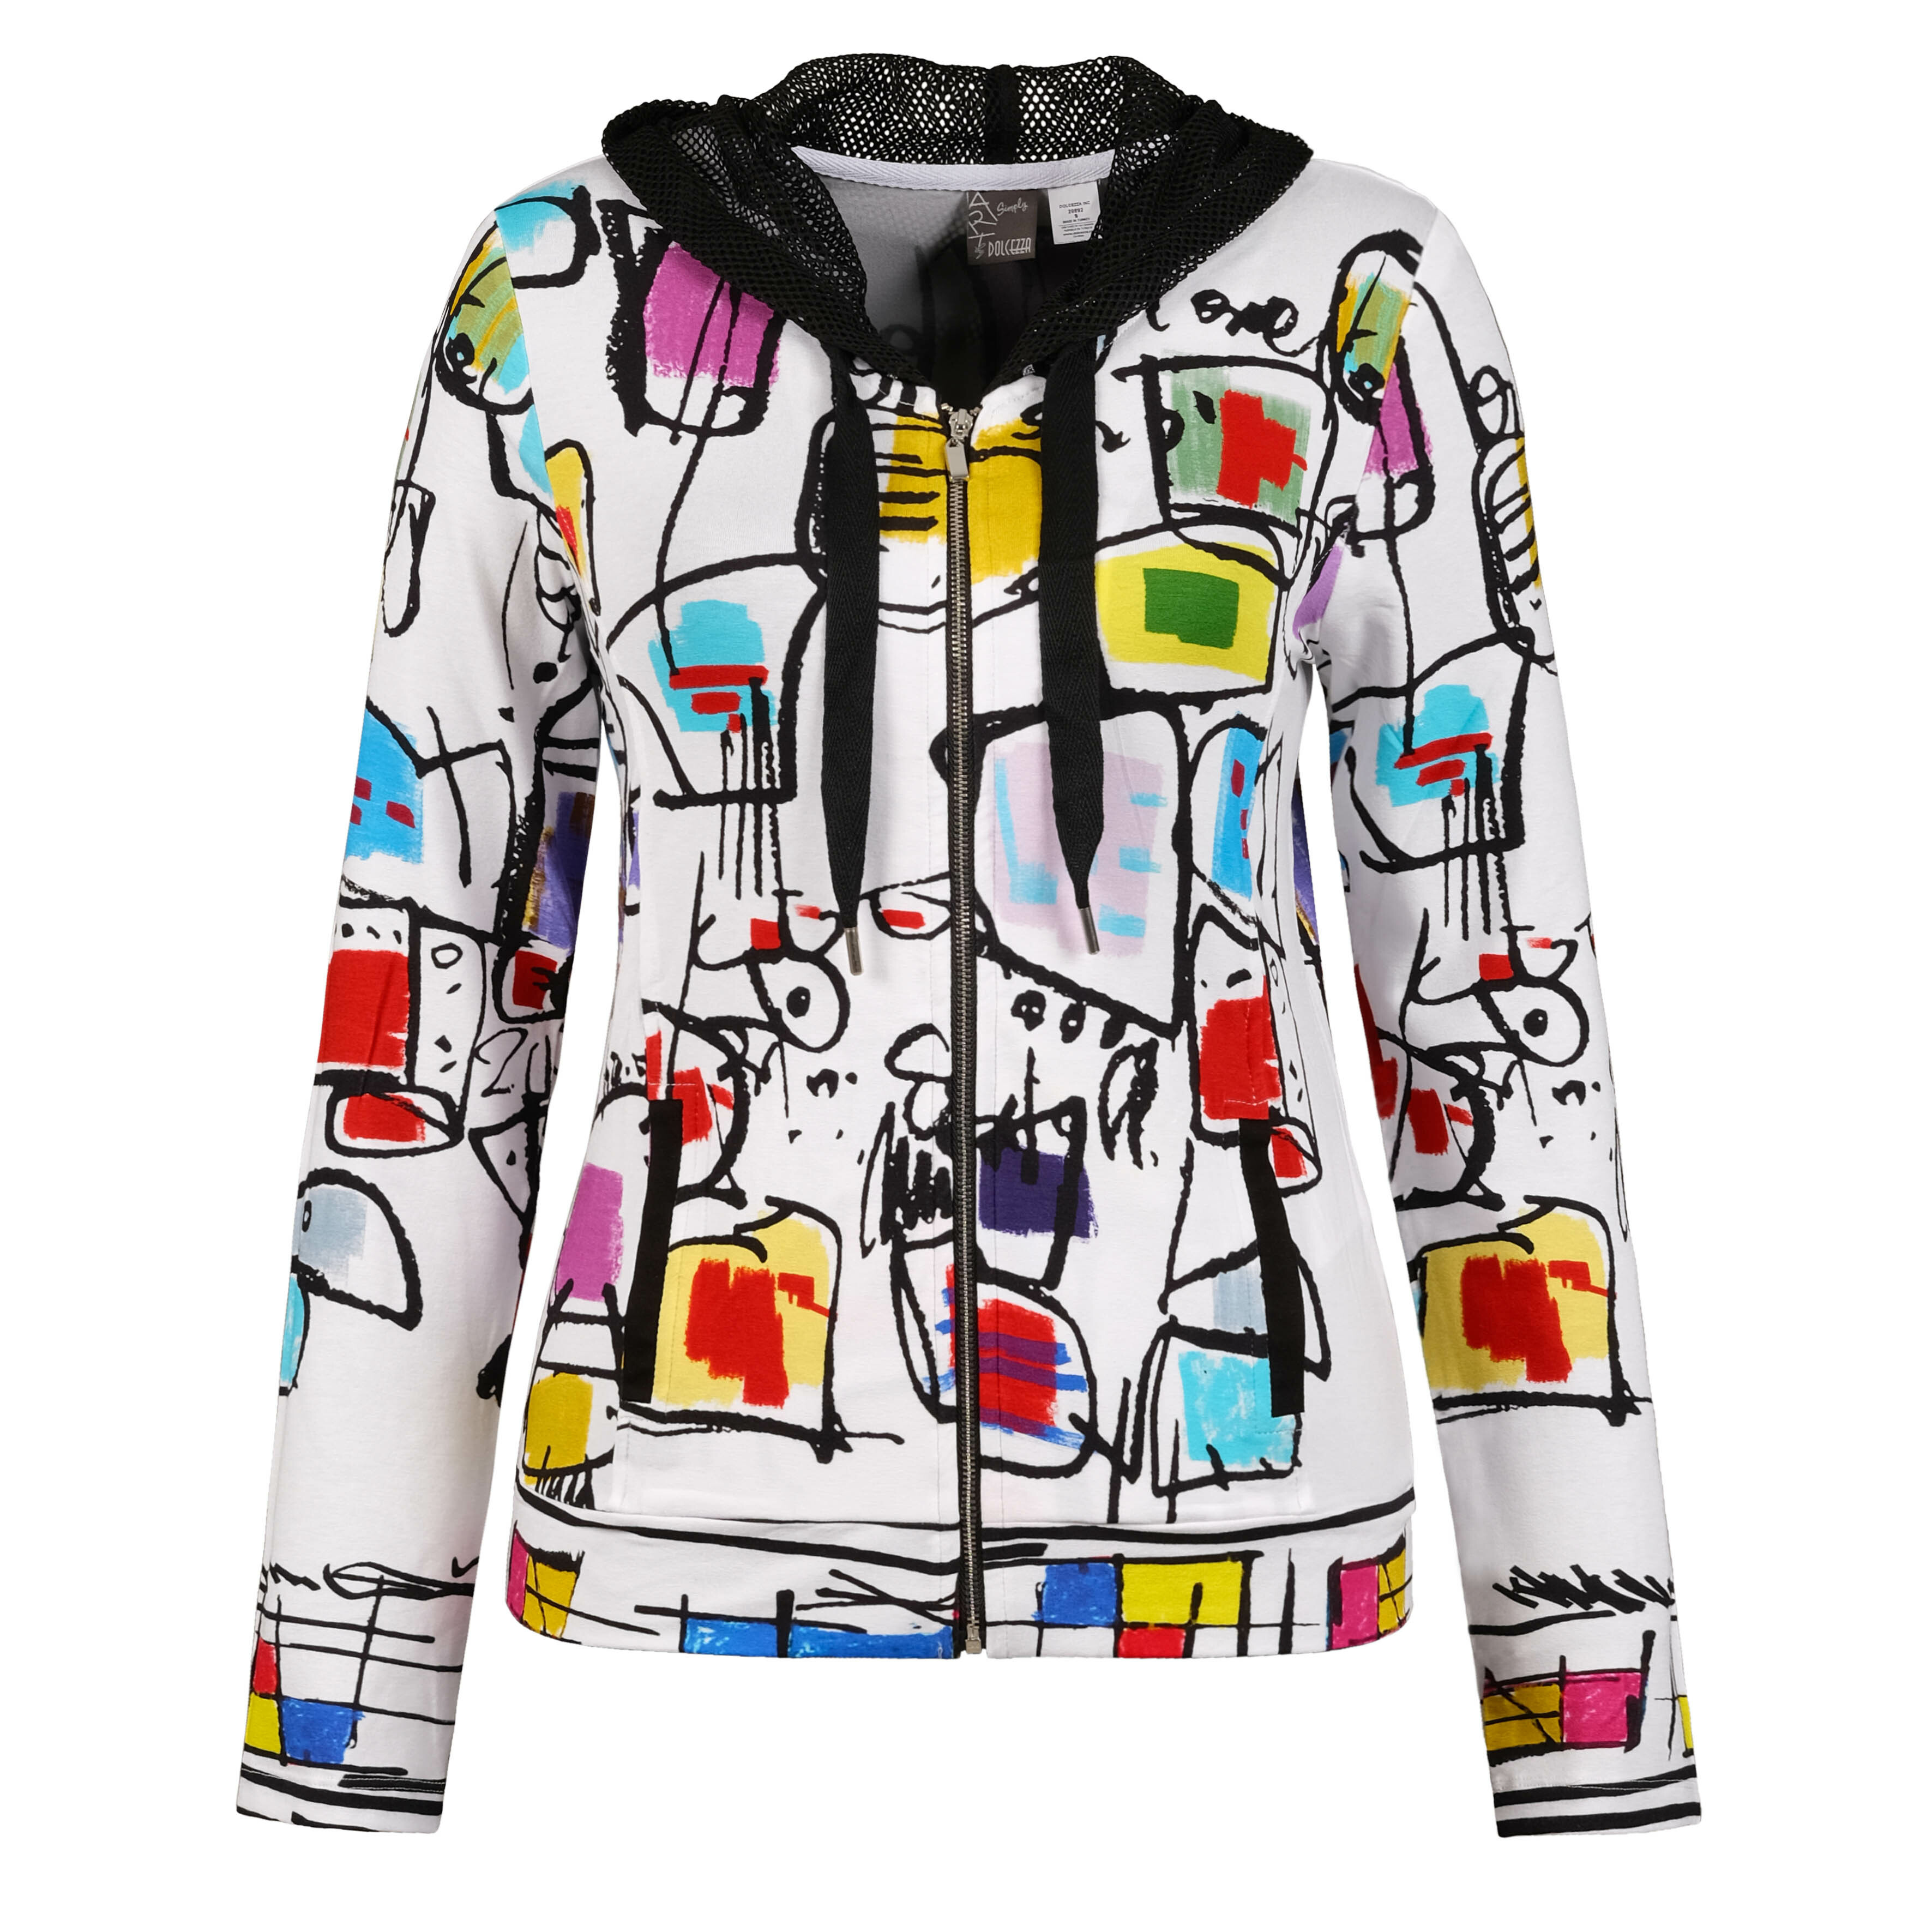 Simply Art Dolcezza: Etagere & Miss Eze Printed Hoodie Jacket (1 Left!) Dolcezza_SimplyArt_20692